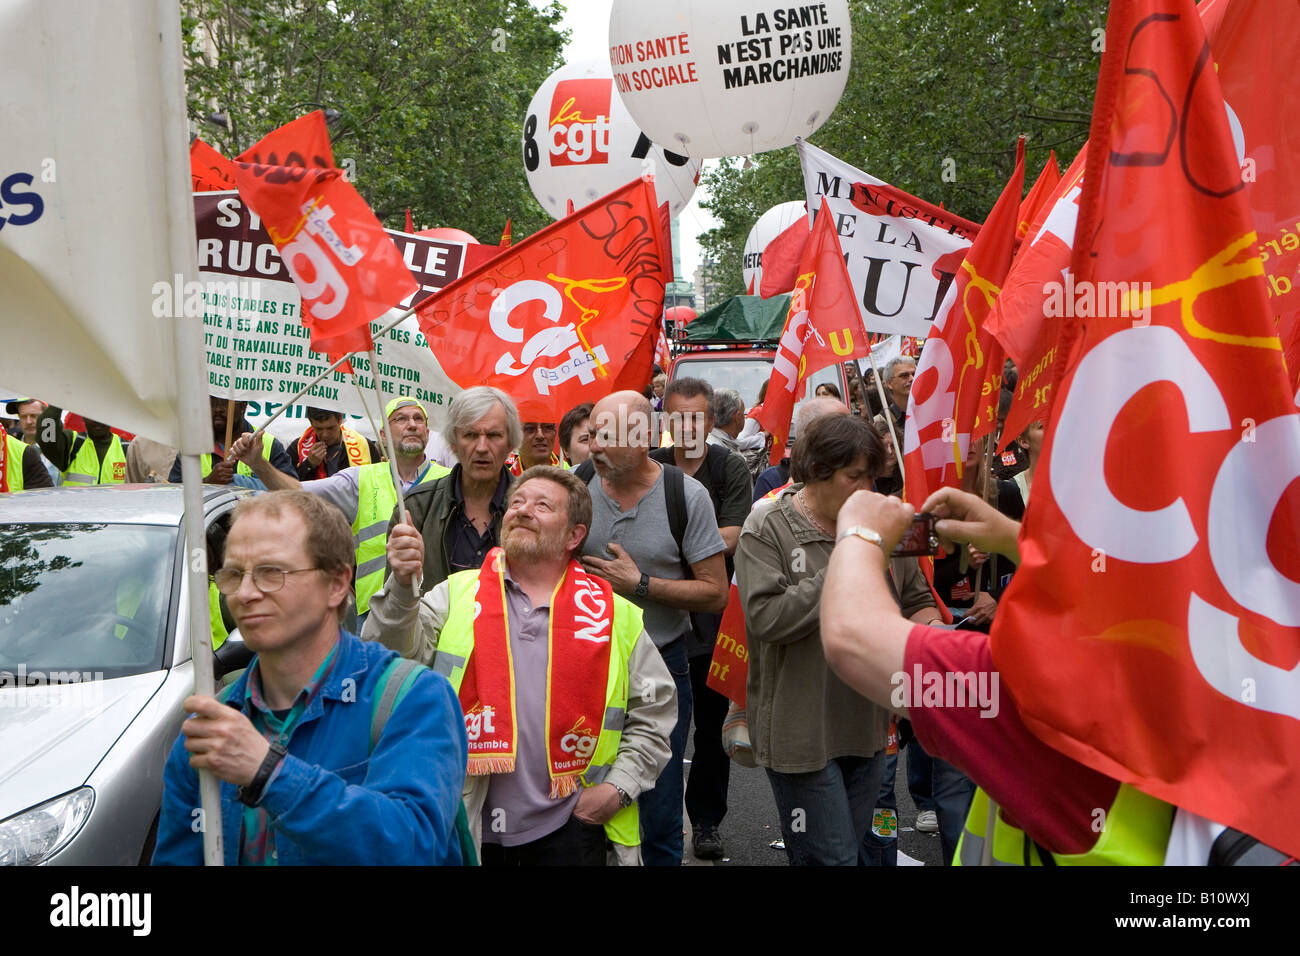 Demonstration in Paris against the inequitable social policy and the pension reform of Nicolas Sarkozy - Stock Image